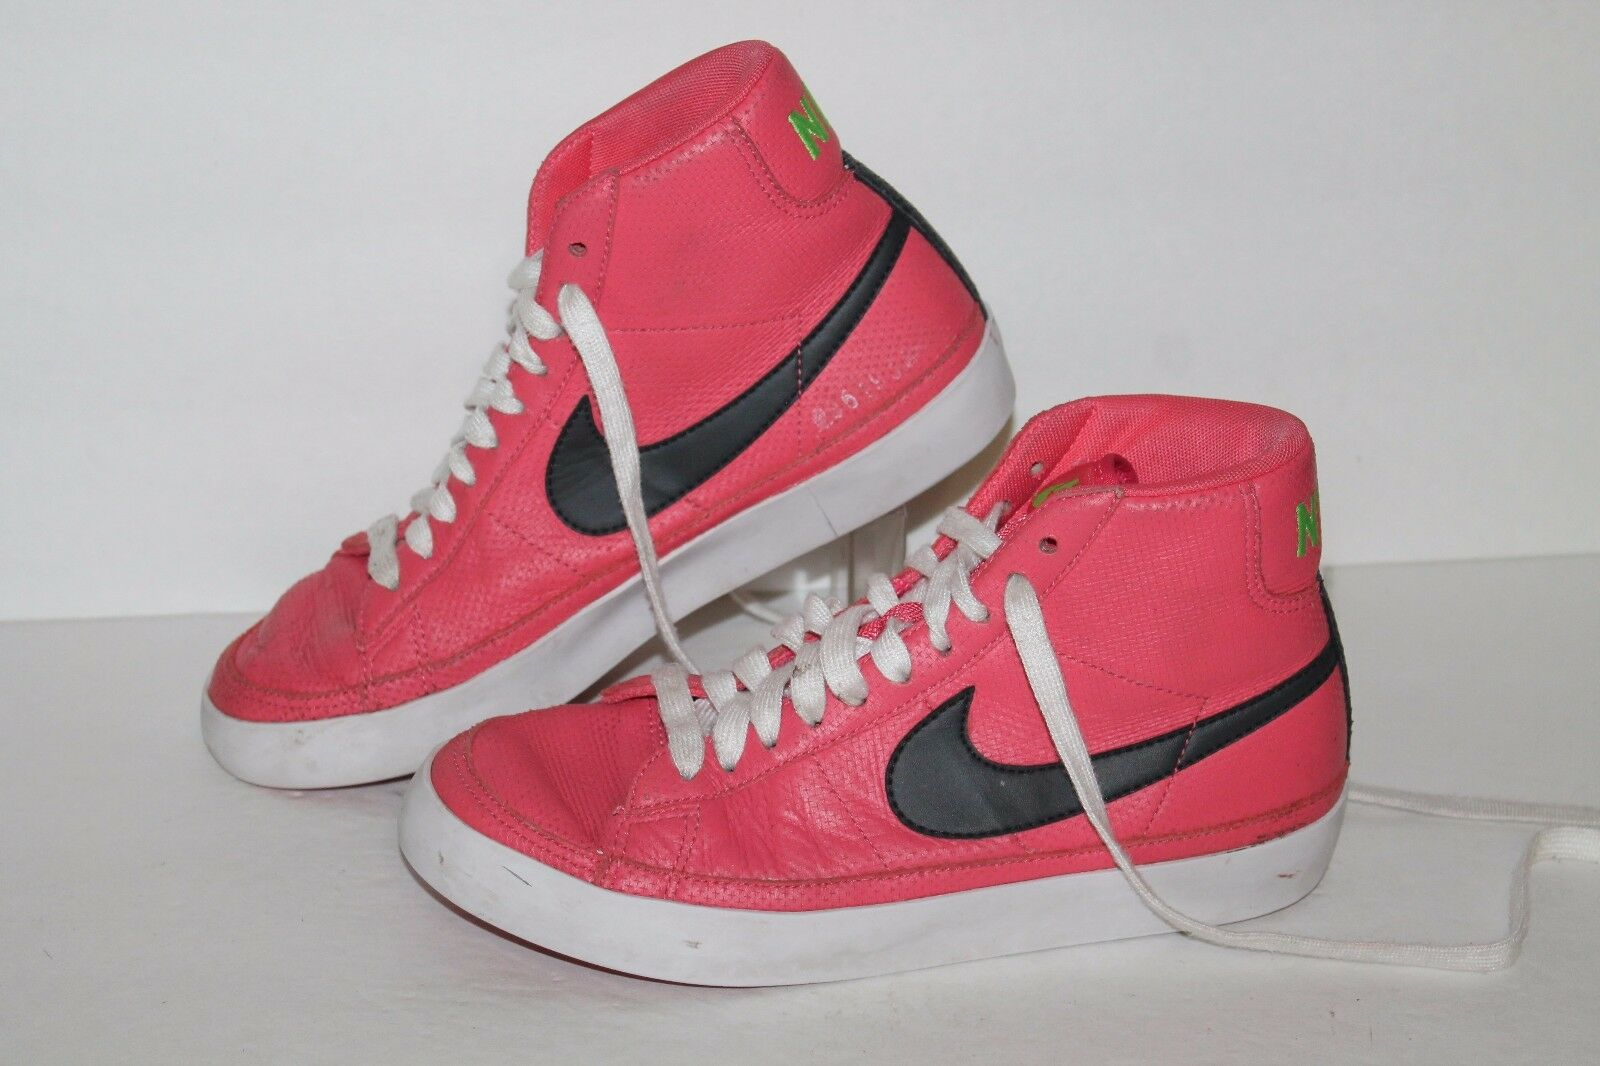 Nike Blazer Mid Casual Sneakers, Fruit Punch/Grey, Womens US Size 7